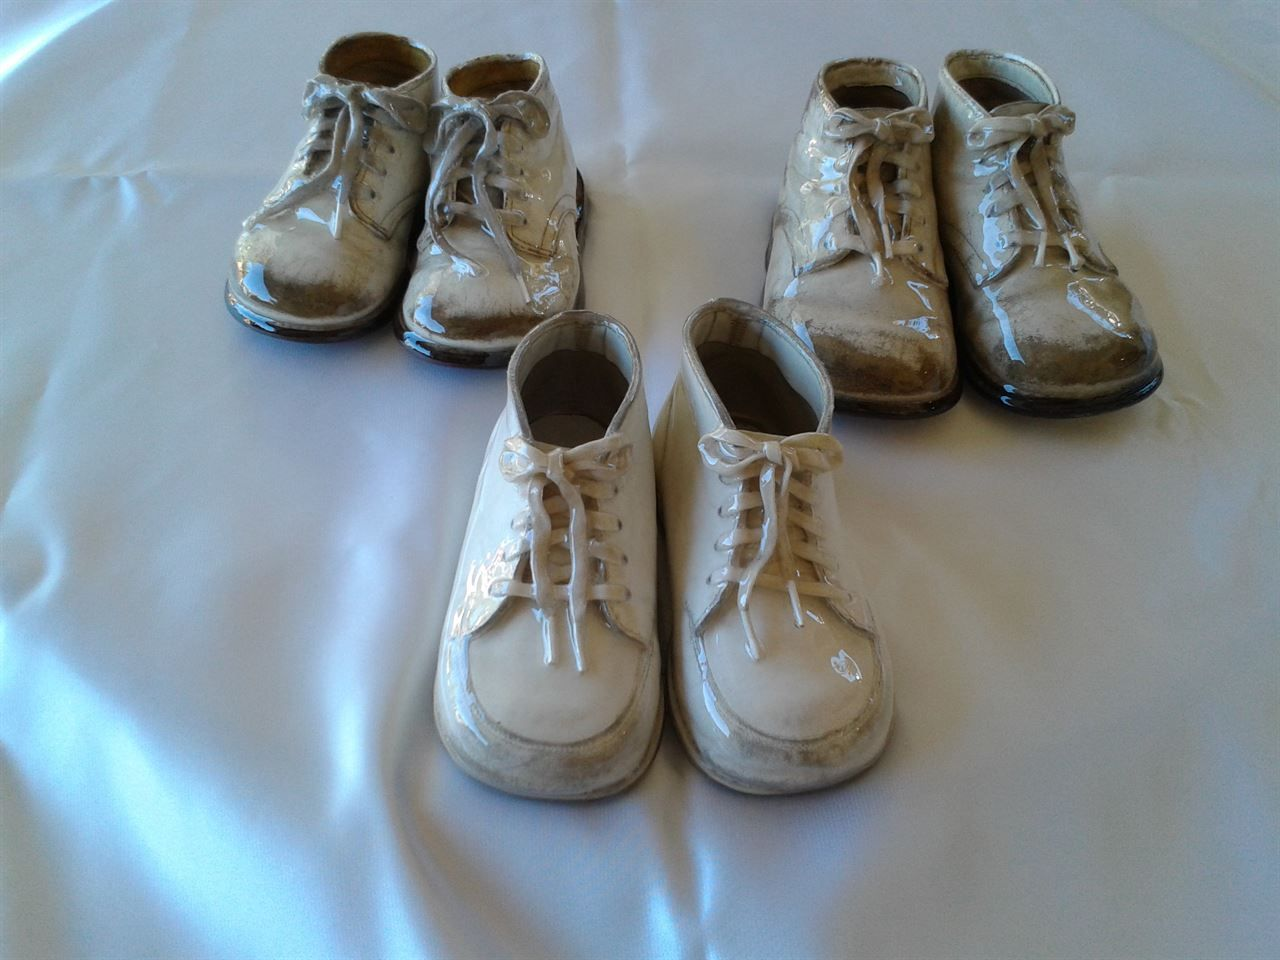 d9375e7721bd An alternative to bronzing. Preserve your child s shoes in its ...